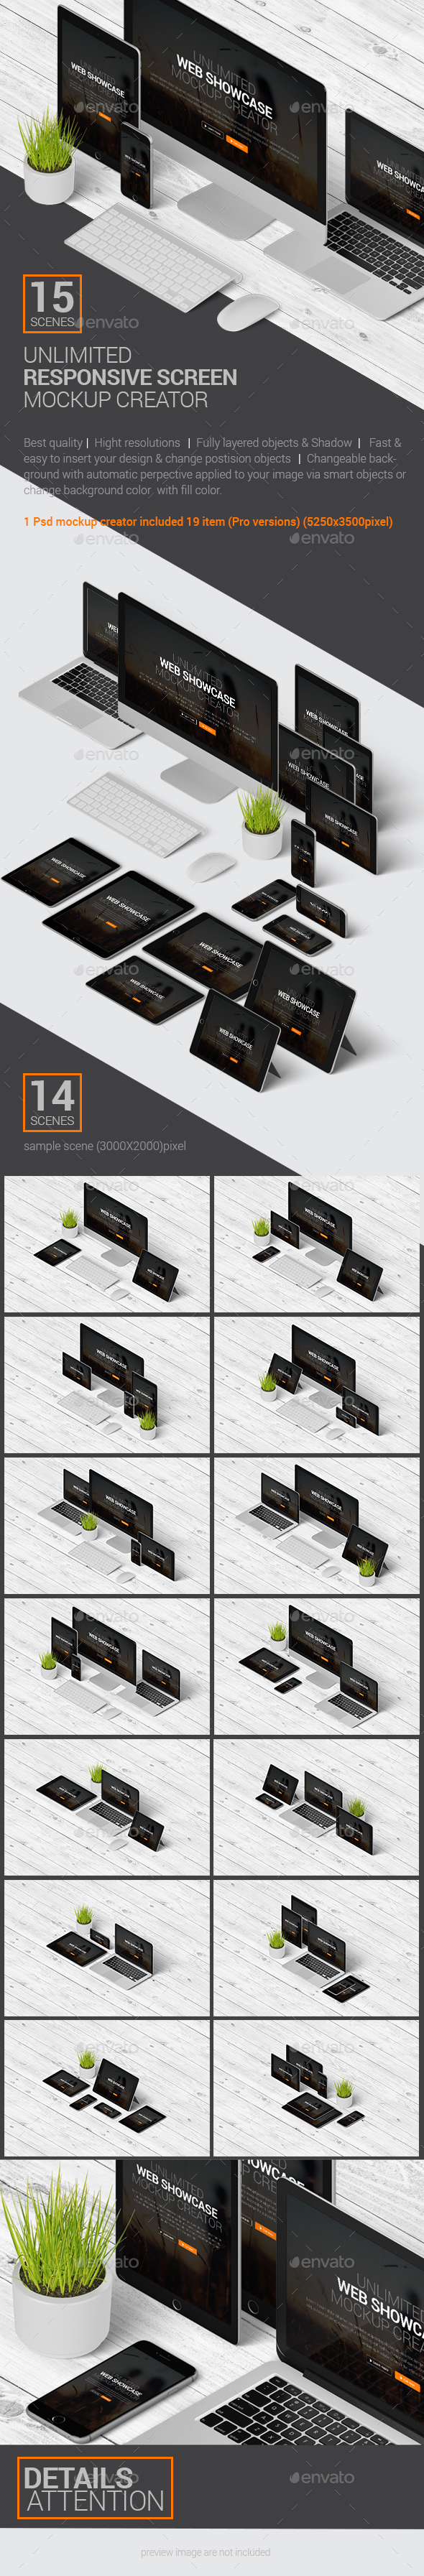 Multi Devices Responsive Screen Mockup - Product Mock-Ups Graphics